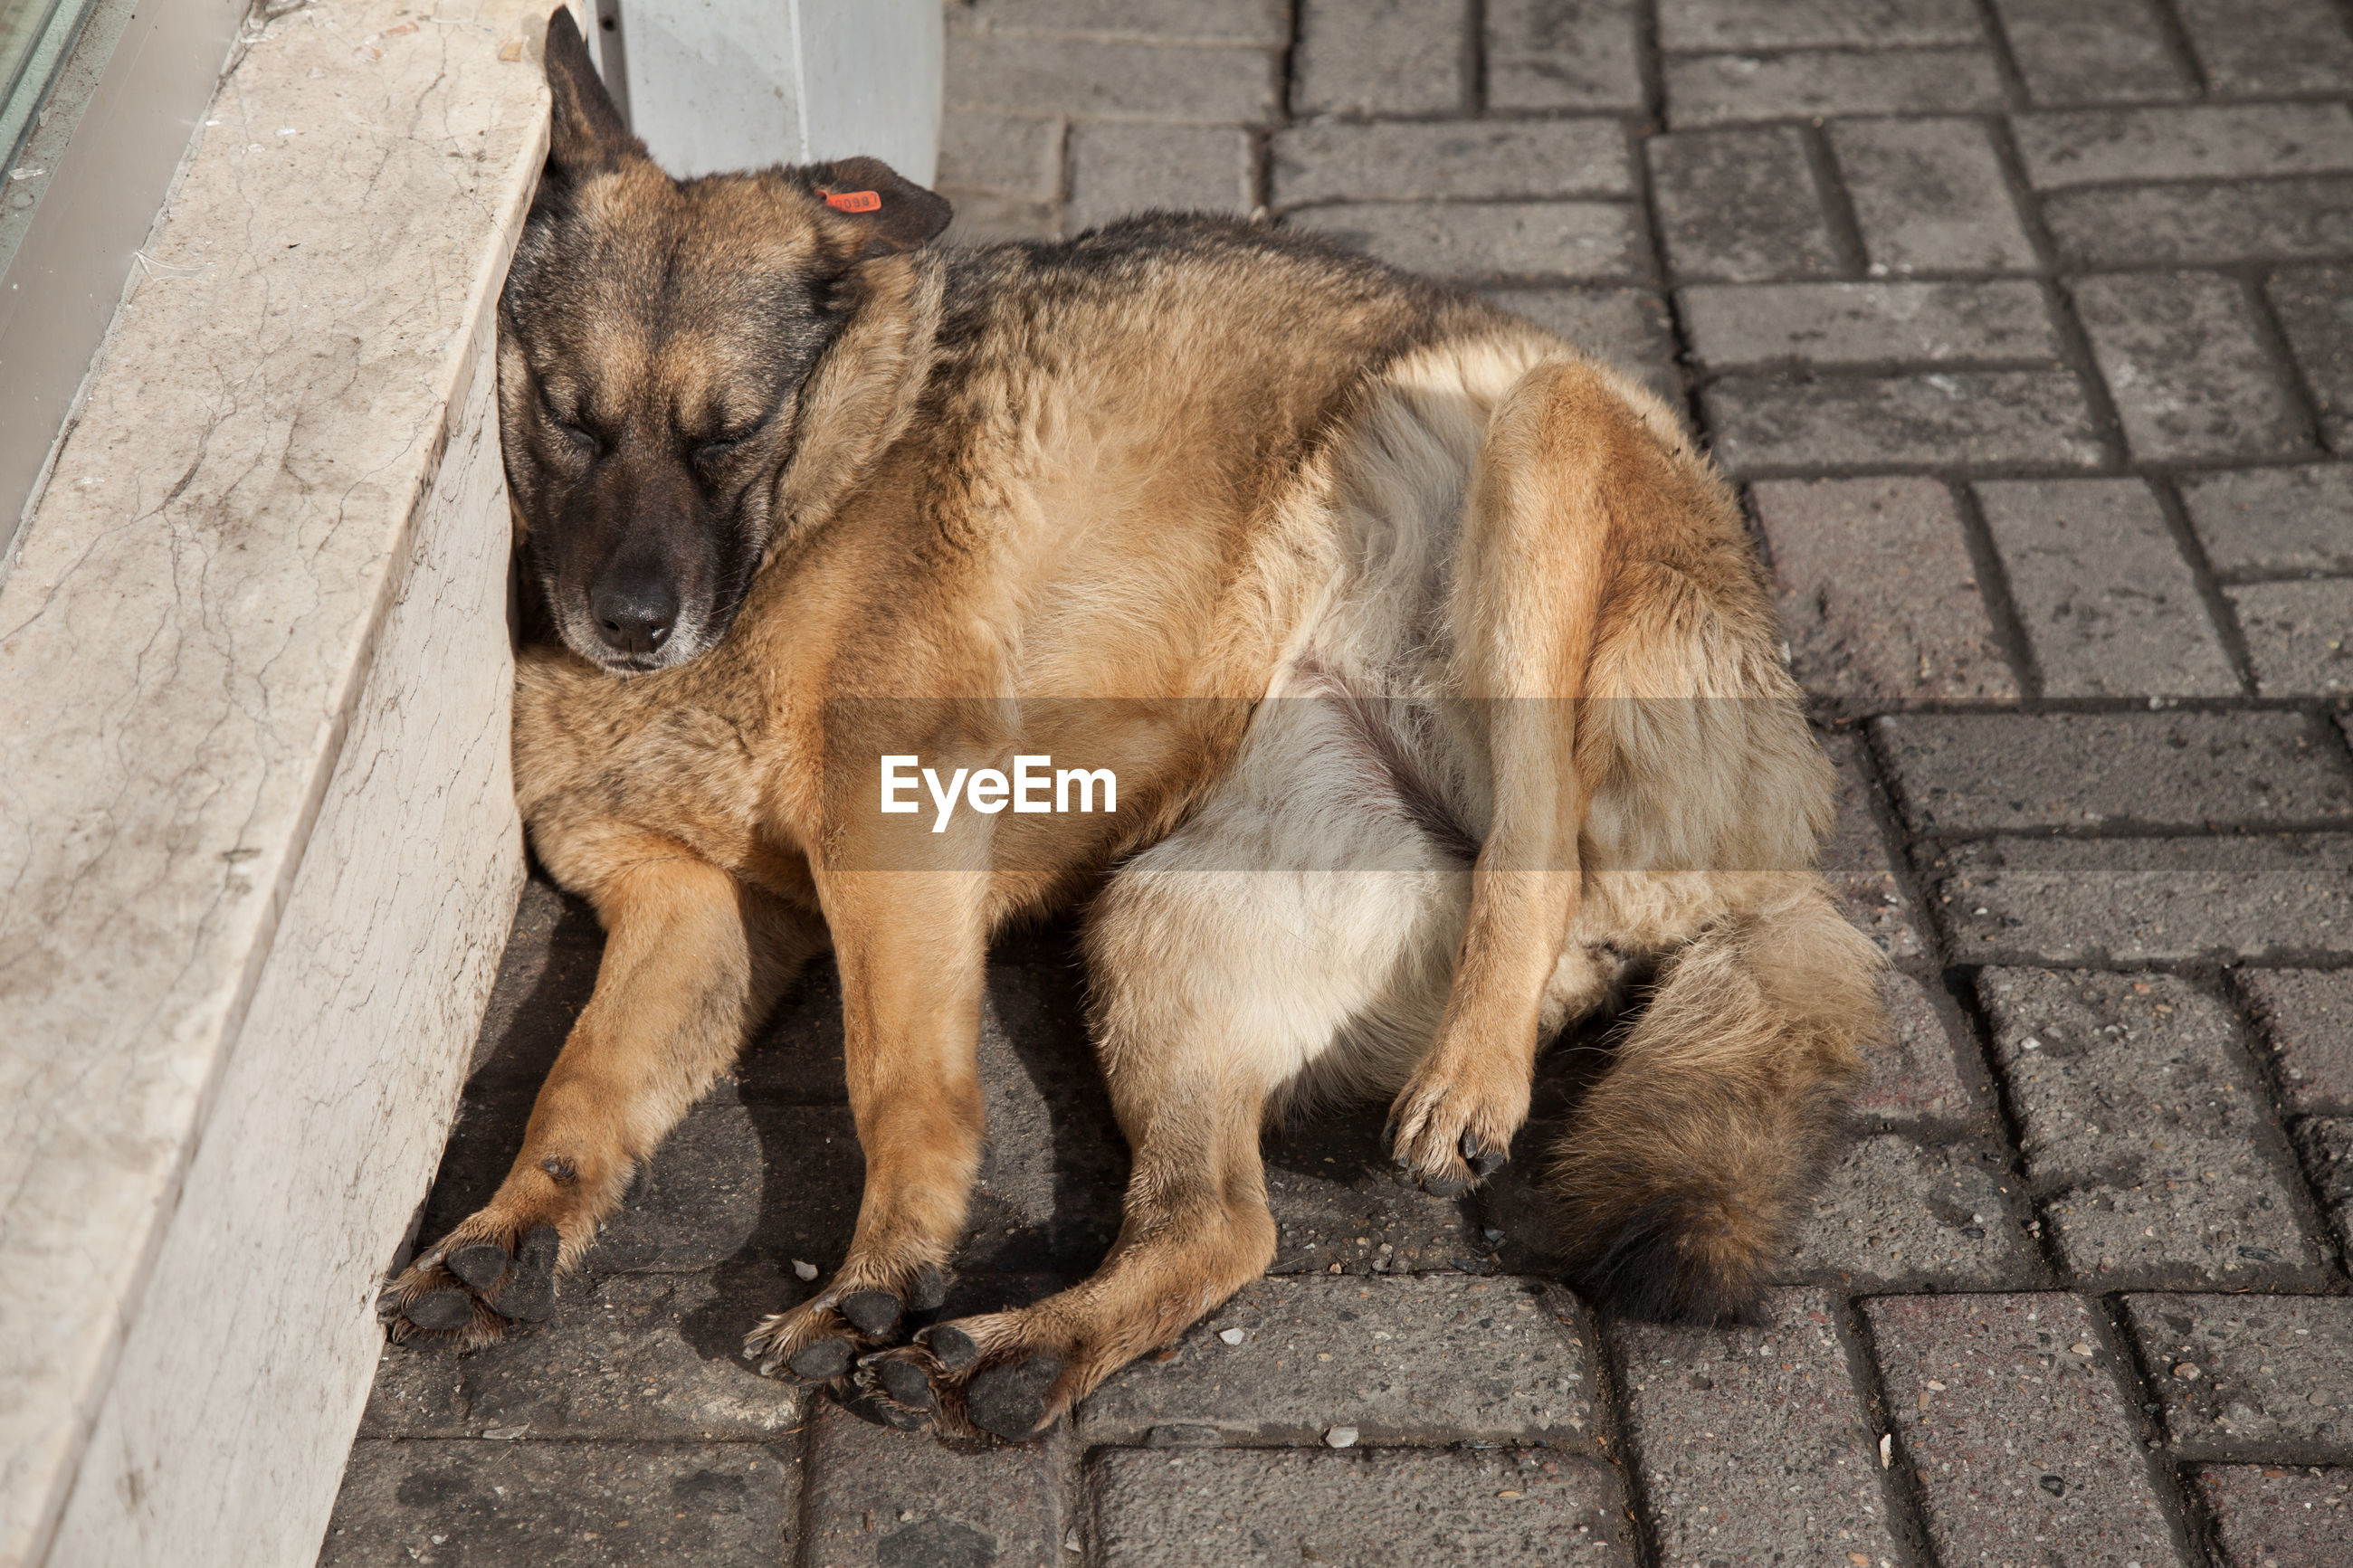 animal themes, mammal, animal, pets, domestic, one animal, domestic animals, canine, dog, vertebrate, footpath, high angle view, relaxation, street, no people, full length, day, sidewalk, city, stone, paving stone, social issues